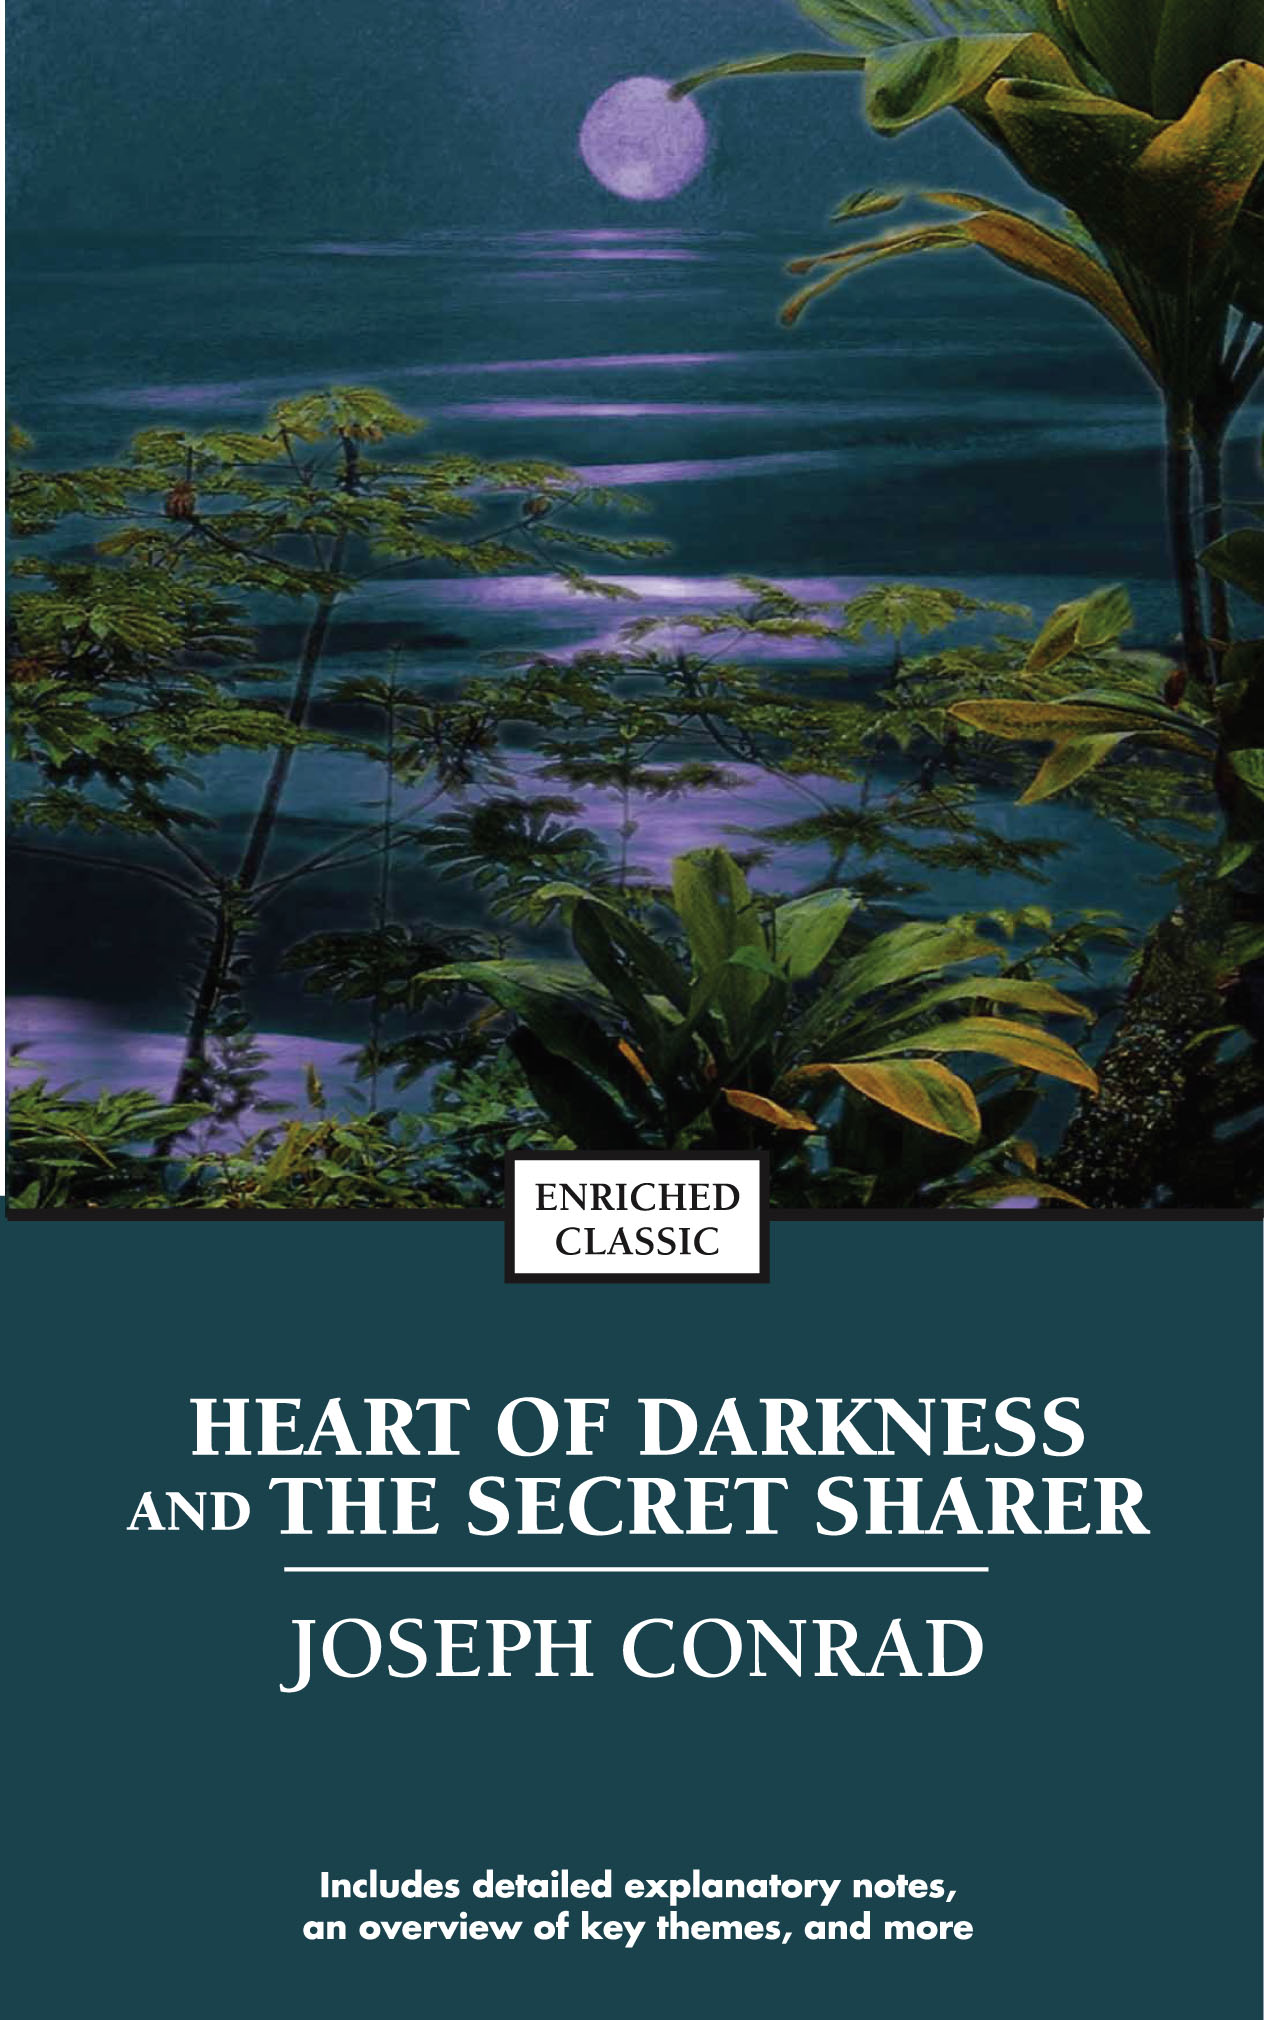 Realism in heart of darkness